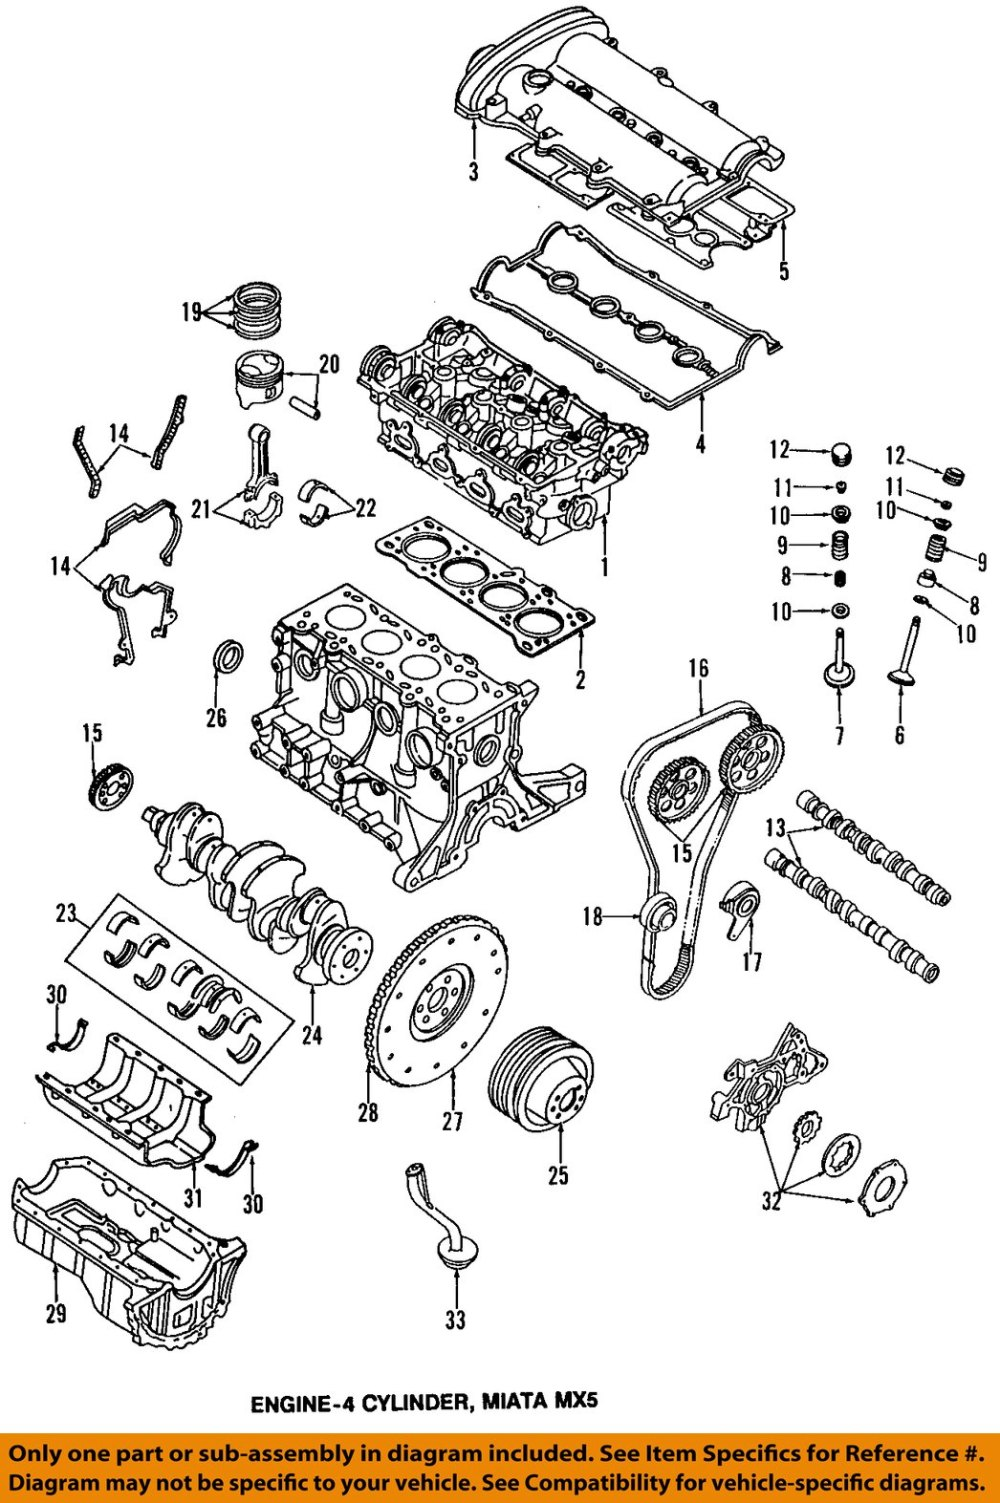 medium resolution of 92 miata engine parts diagram uvx schullieder de u202292 miata engine parts diagram wiring library